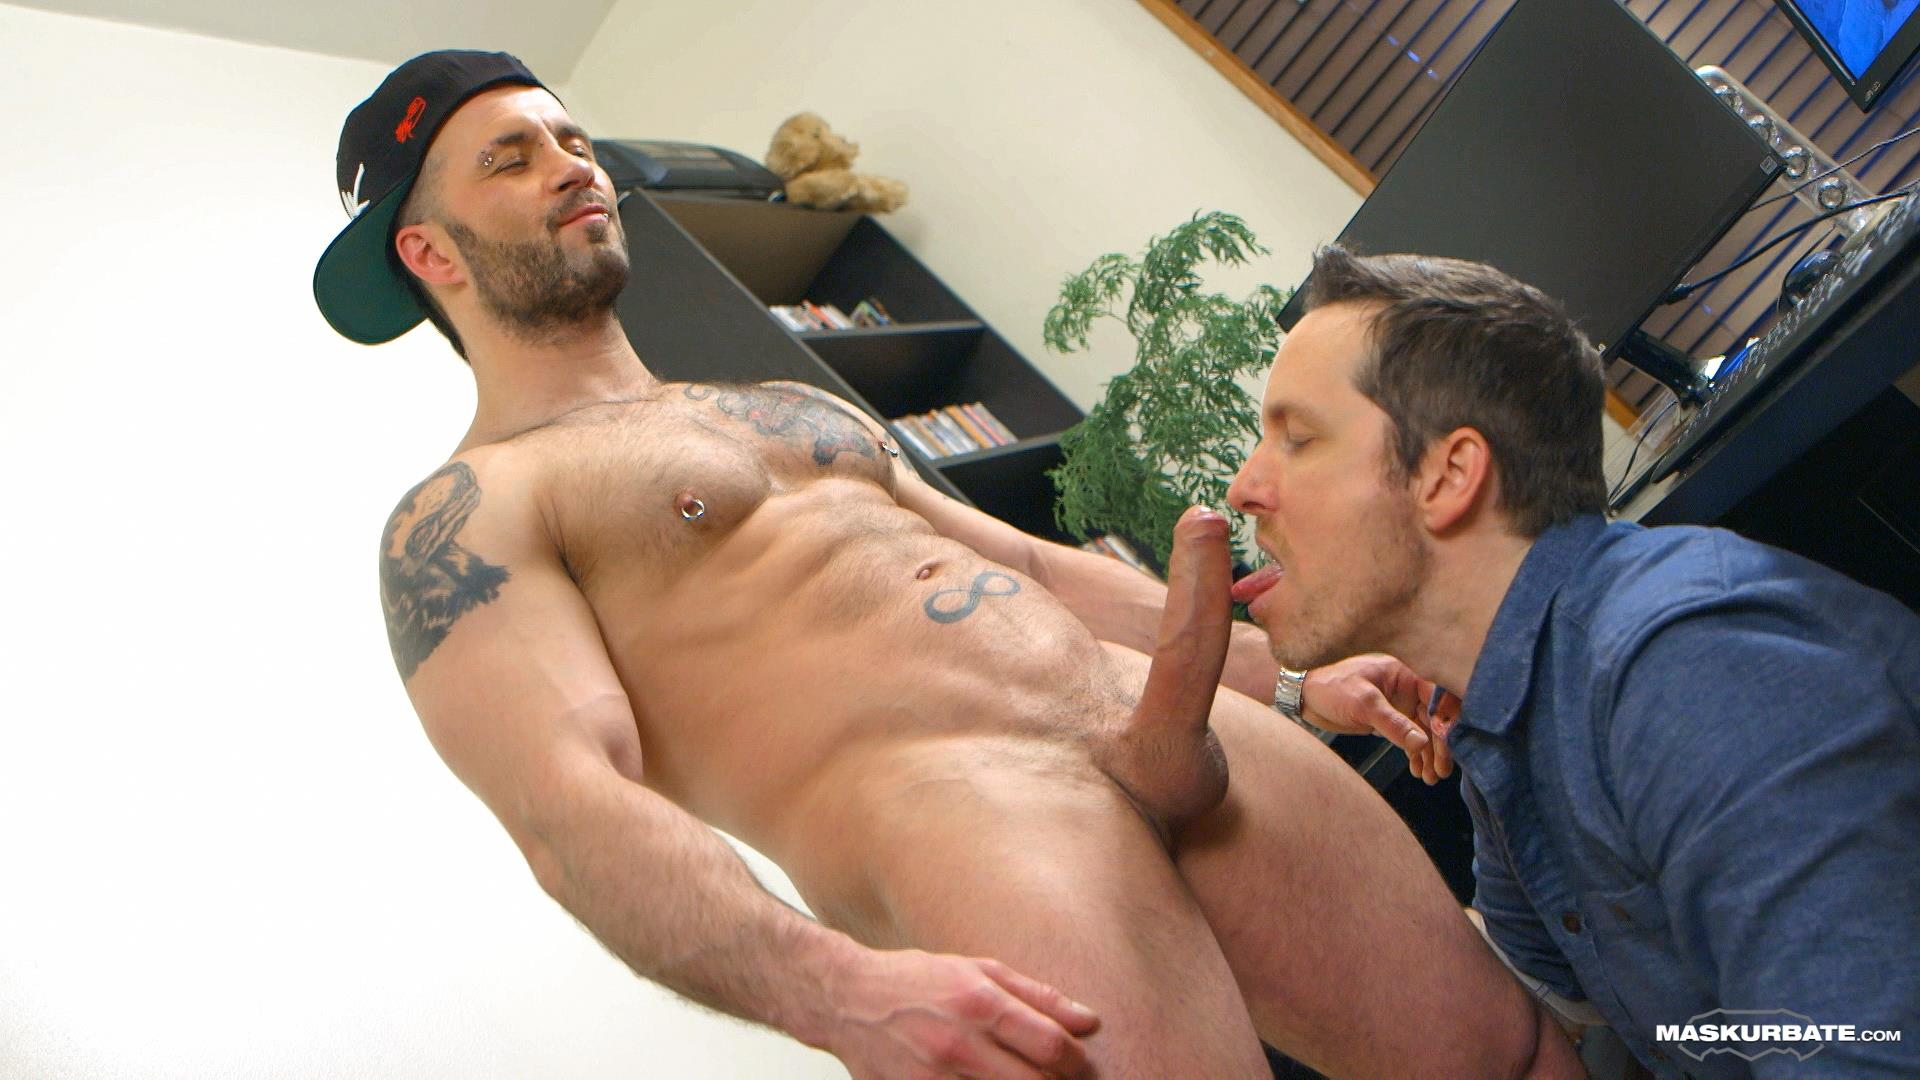 Maskurbate-Manuel-Deboxer-Gets-His-Big-Uncut-Cock-Sucked-Amateur-Gay-Porn-16 Manuel Deboxer Gets His Big Uncut Cock Sucked Off